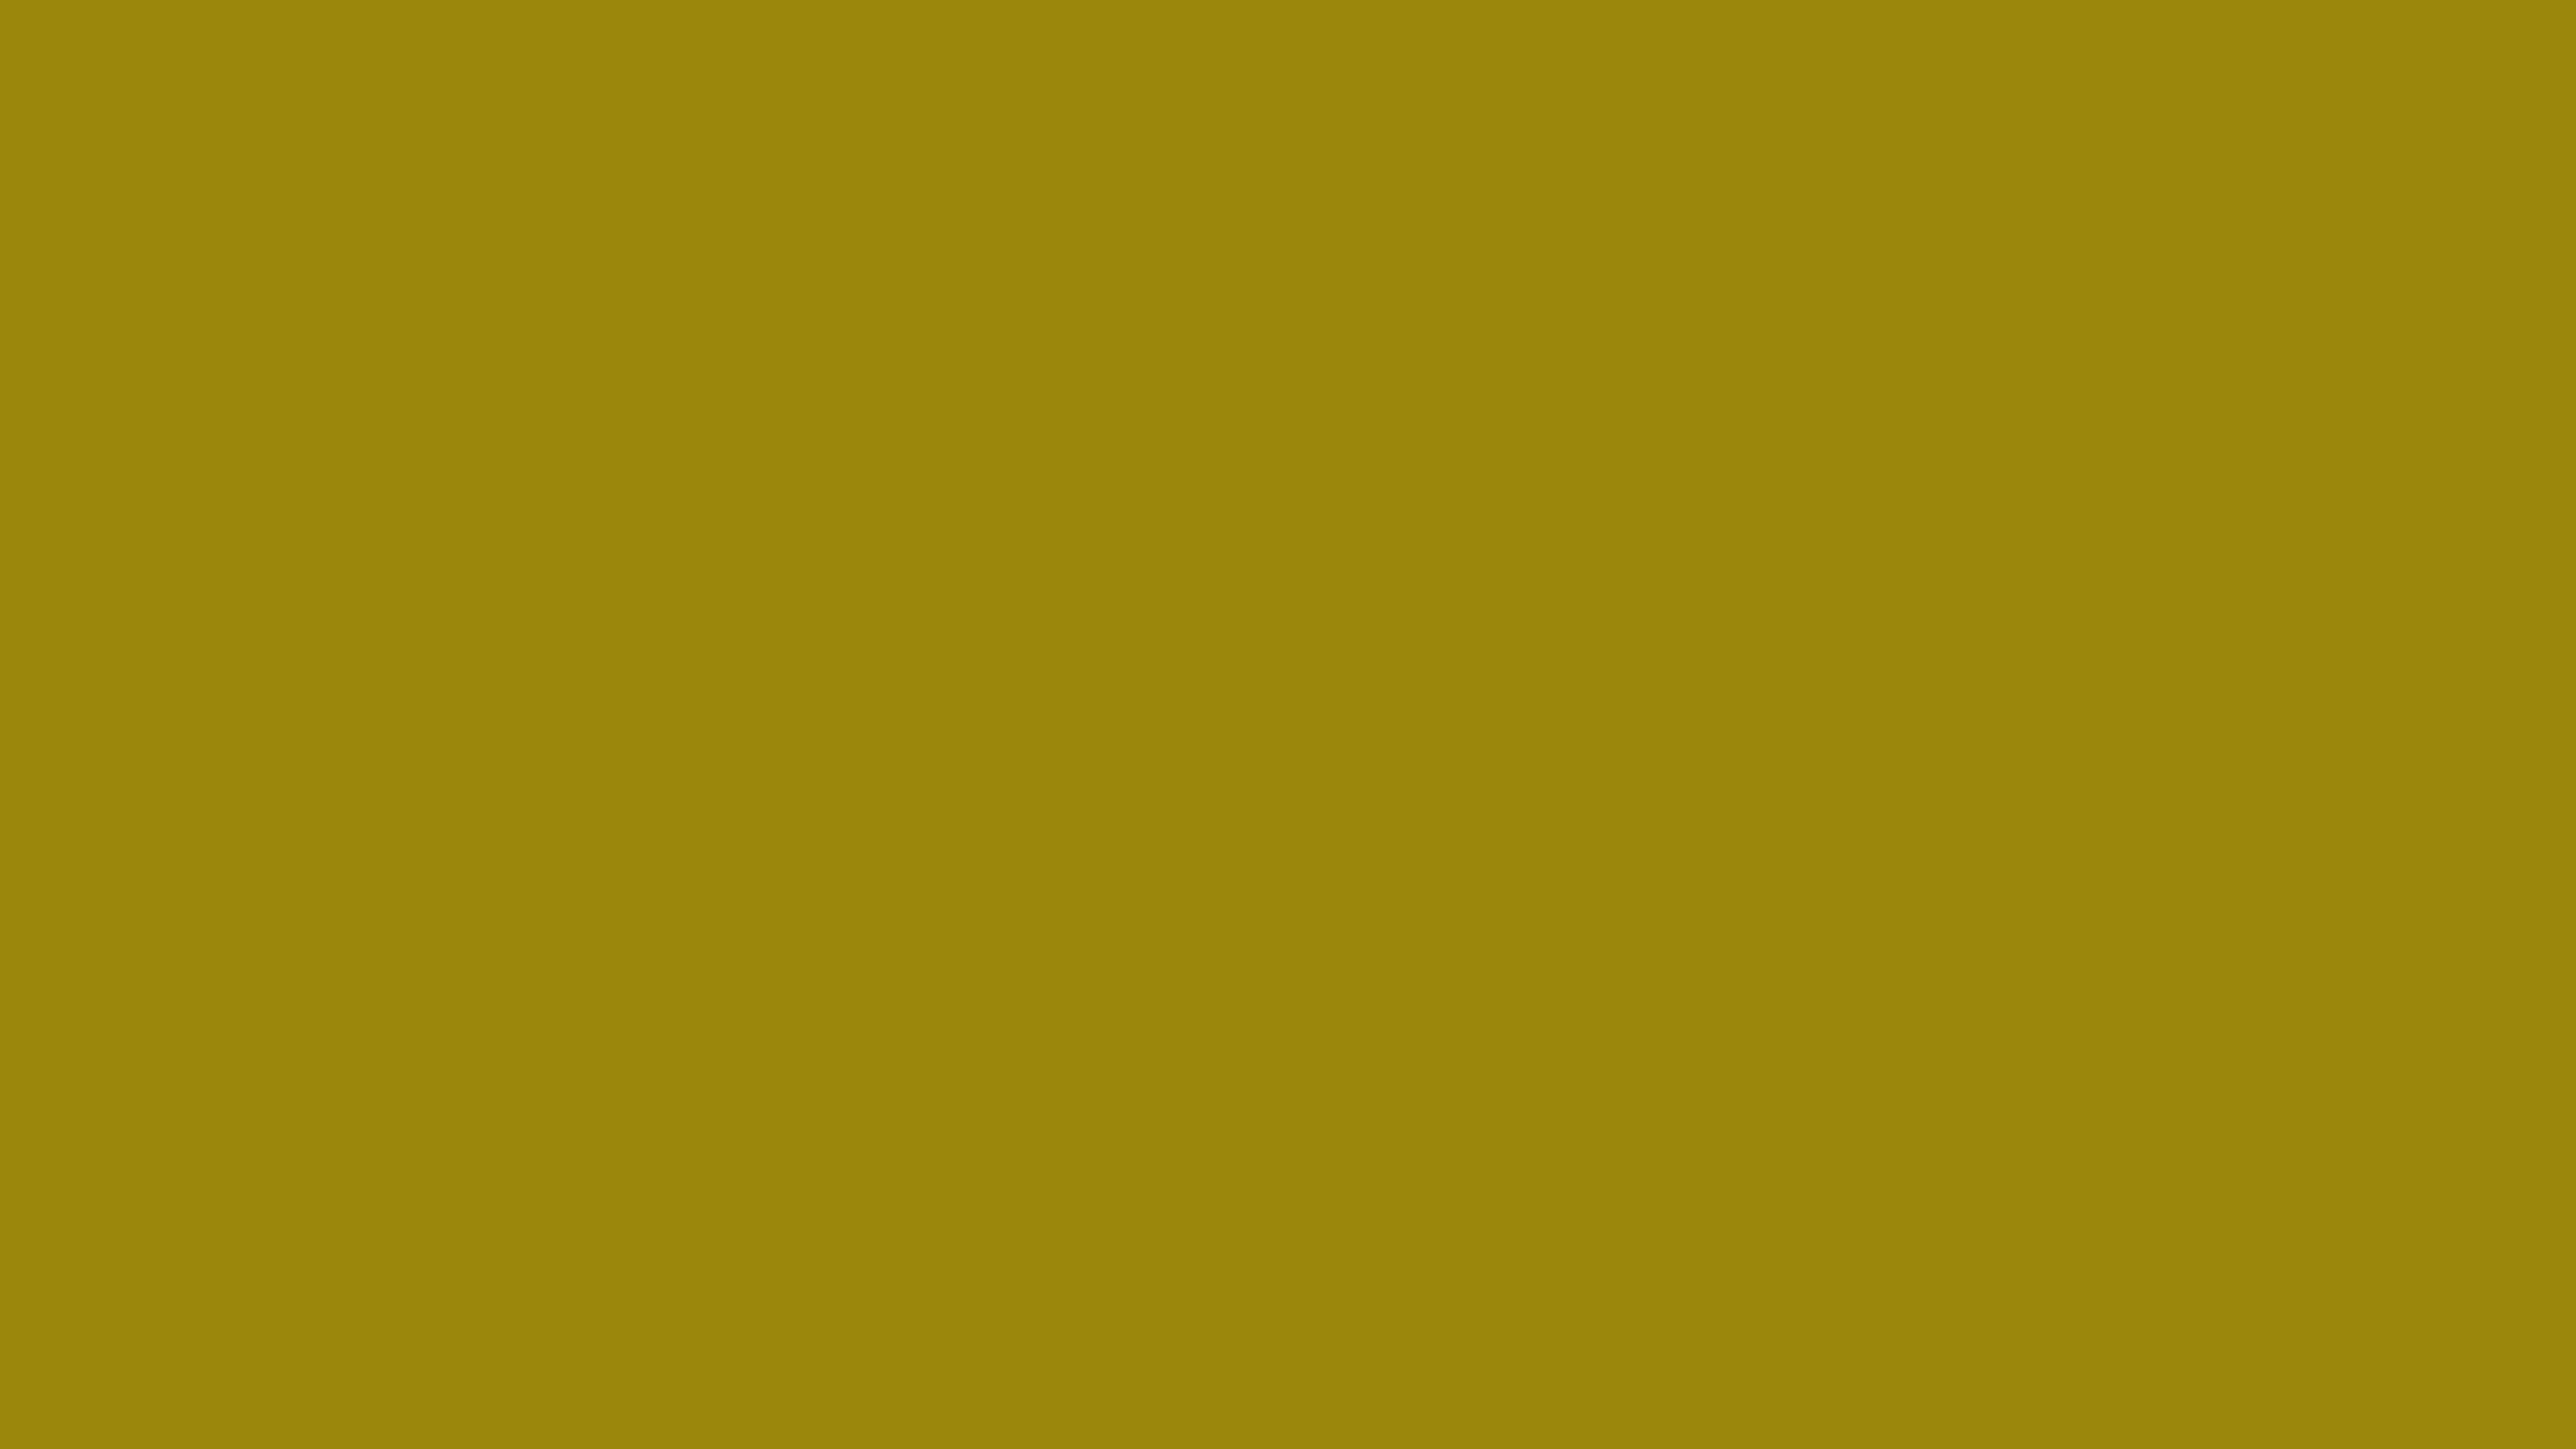 5120x2880 Dark Yellow Solid Color Background